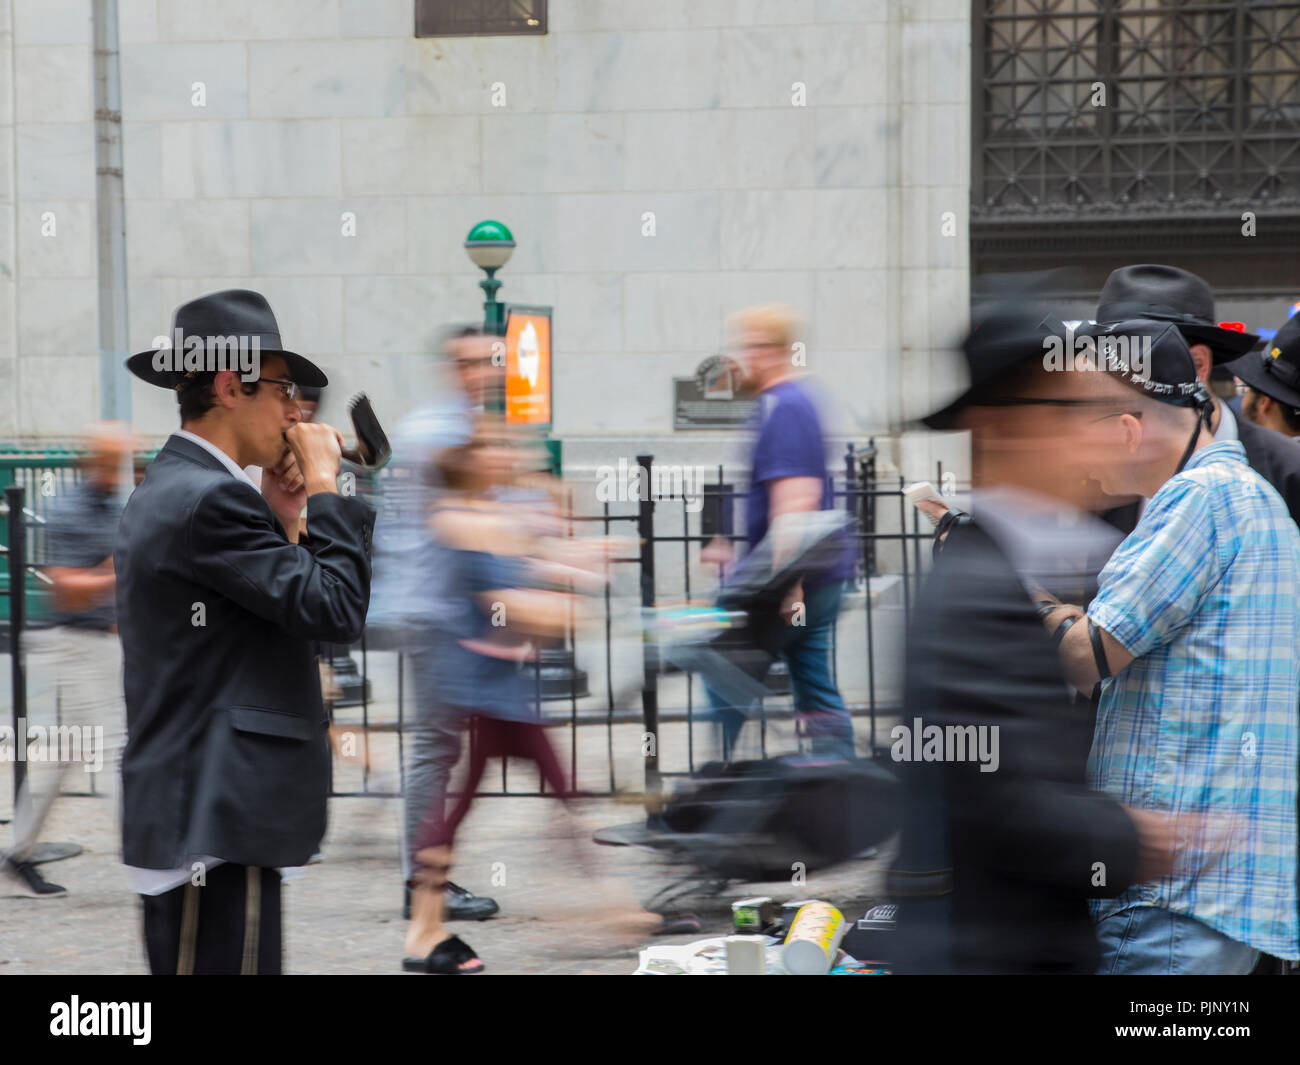 New York, United States of America. 07th, Sep 2018.   A group of Jewish Orthodox works chippers, of the  Lubavitcher sect of the Hasidim, the ultra-orthodox in Wall Street area, reach out to non observant and alienated Jews. in New York, United States of America, 07 September 2018. (PHOTO) Alejandro Sala/Alamy News Stock Photo